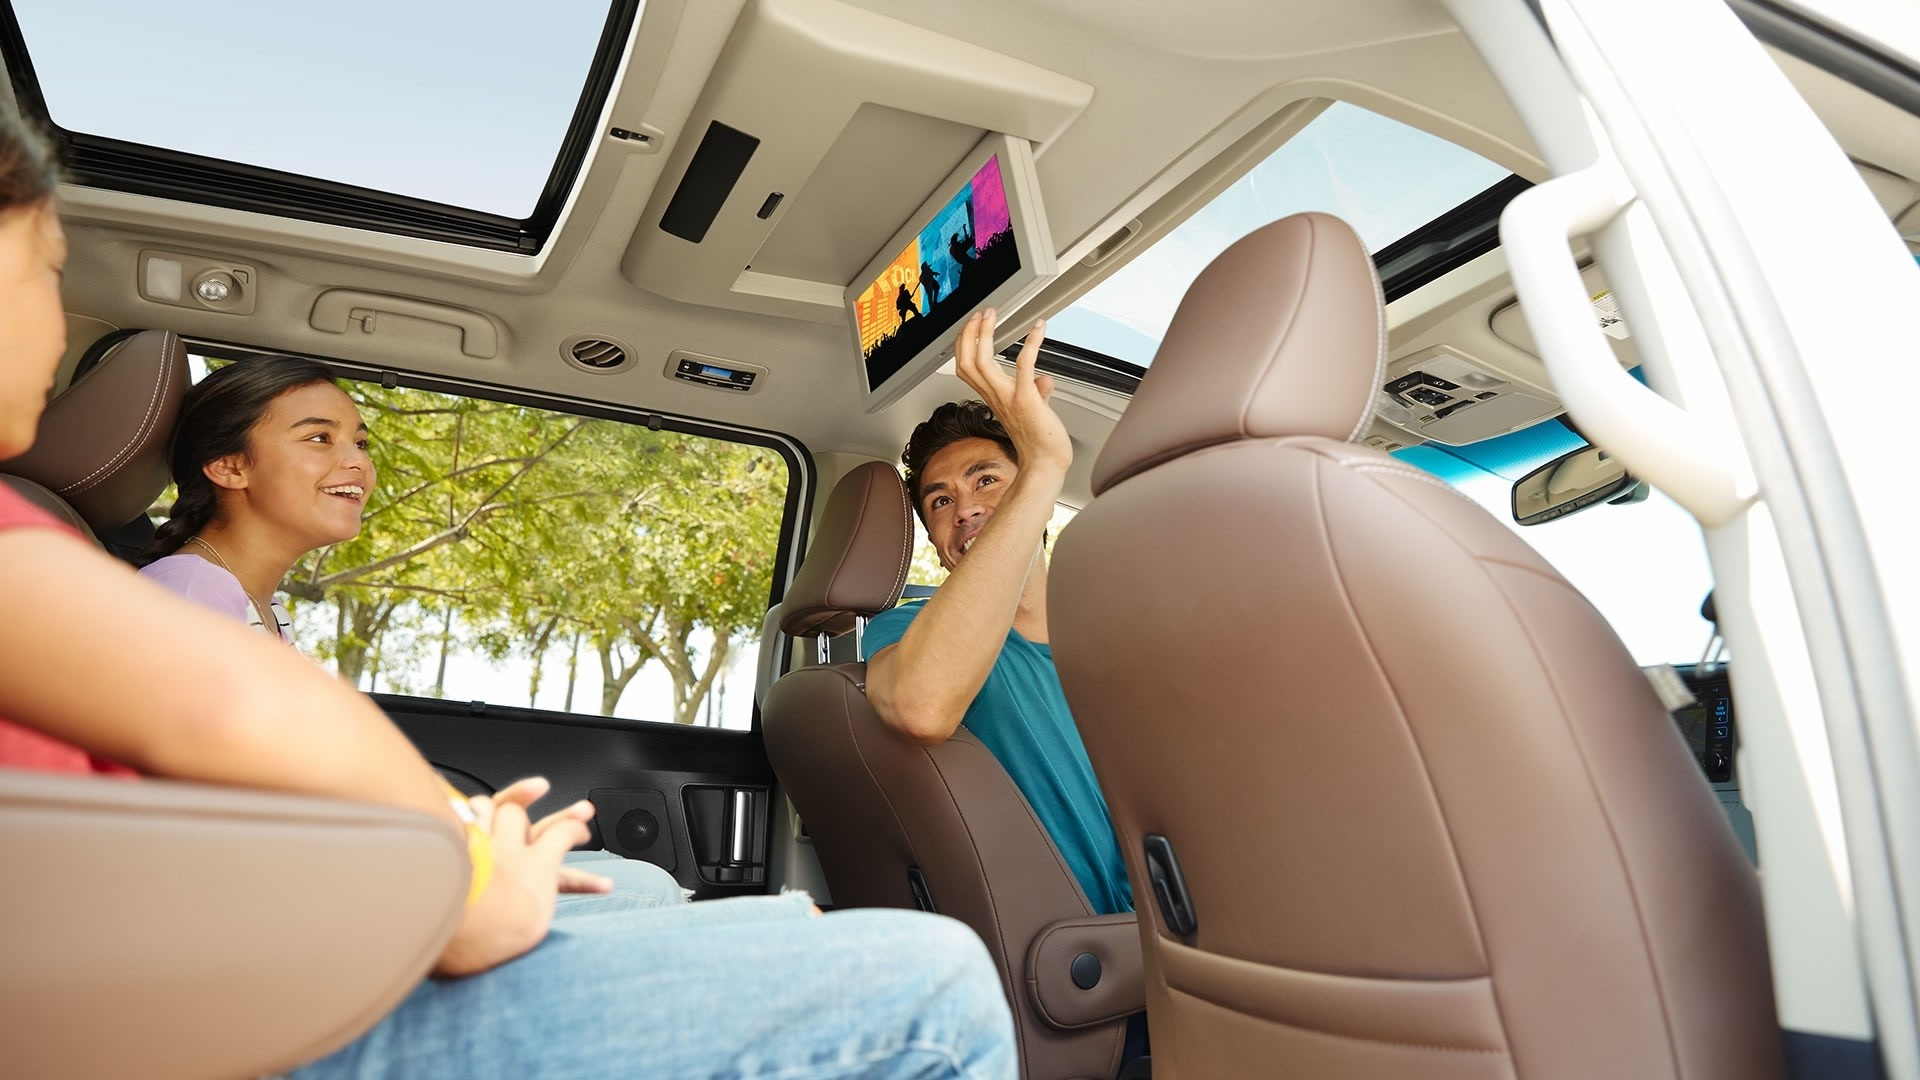 2017 Toyota Sienna Limited FWD Chestnut Interior with White Accents Rear Entertainment System